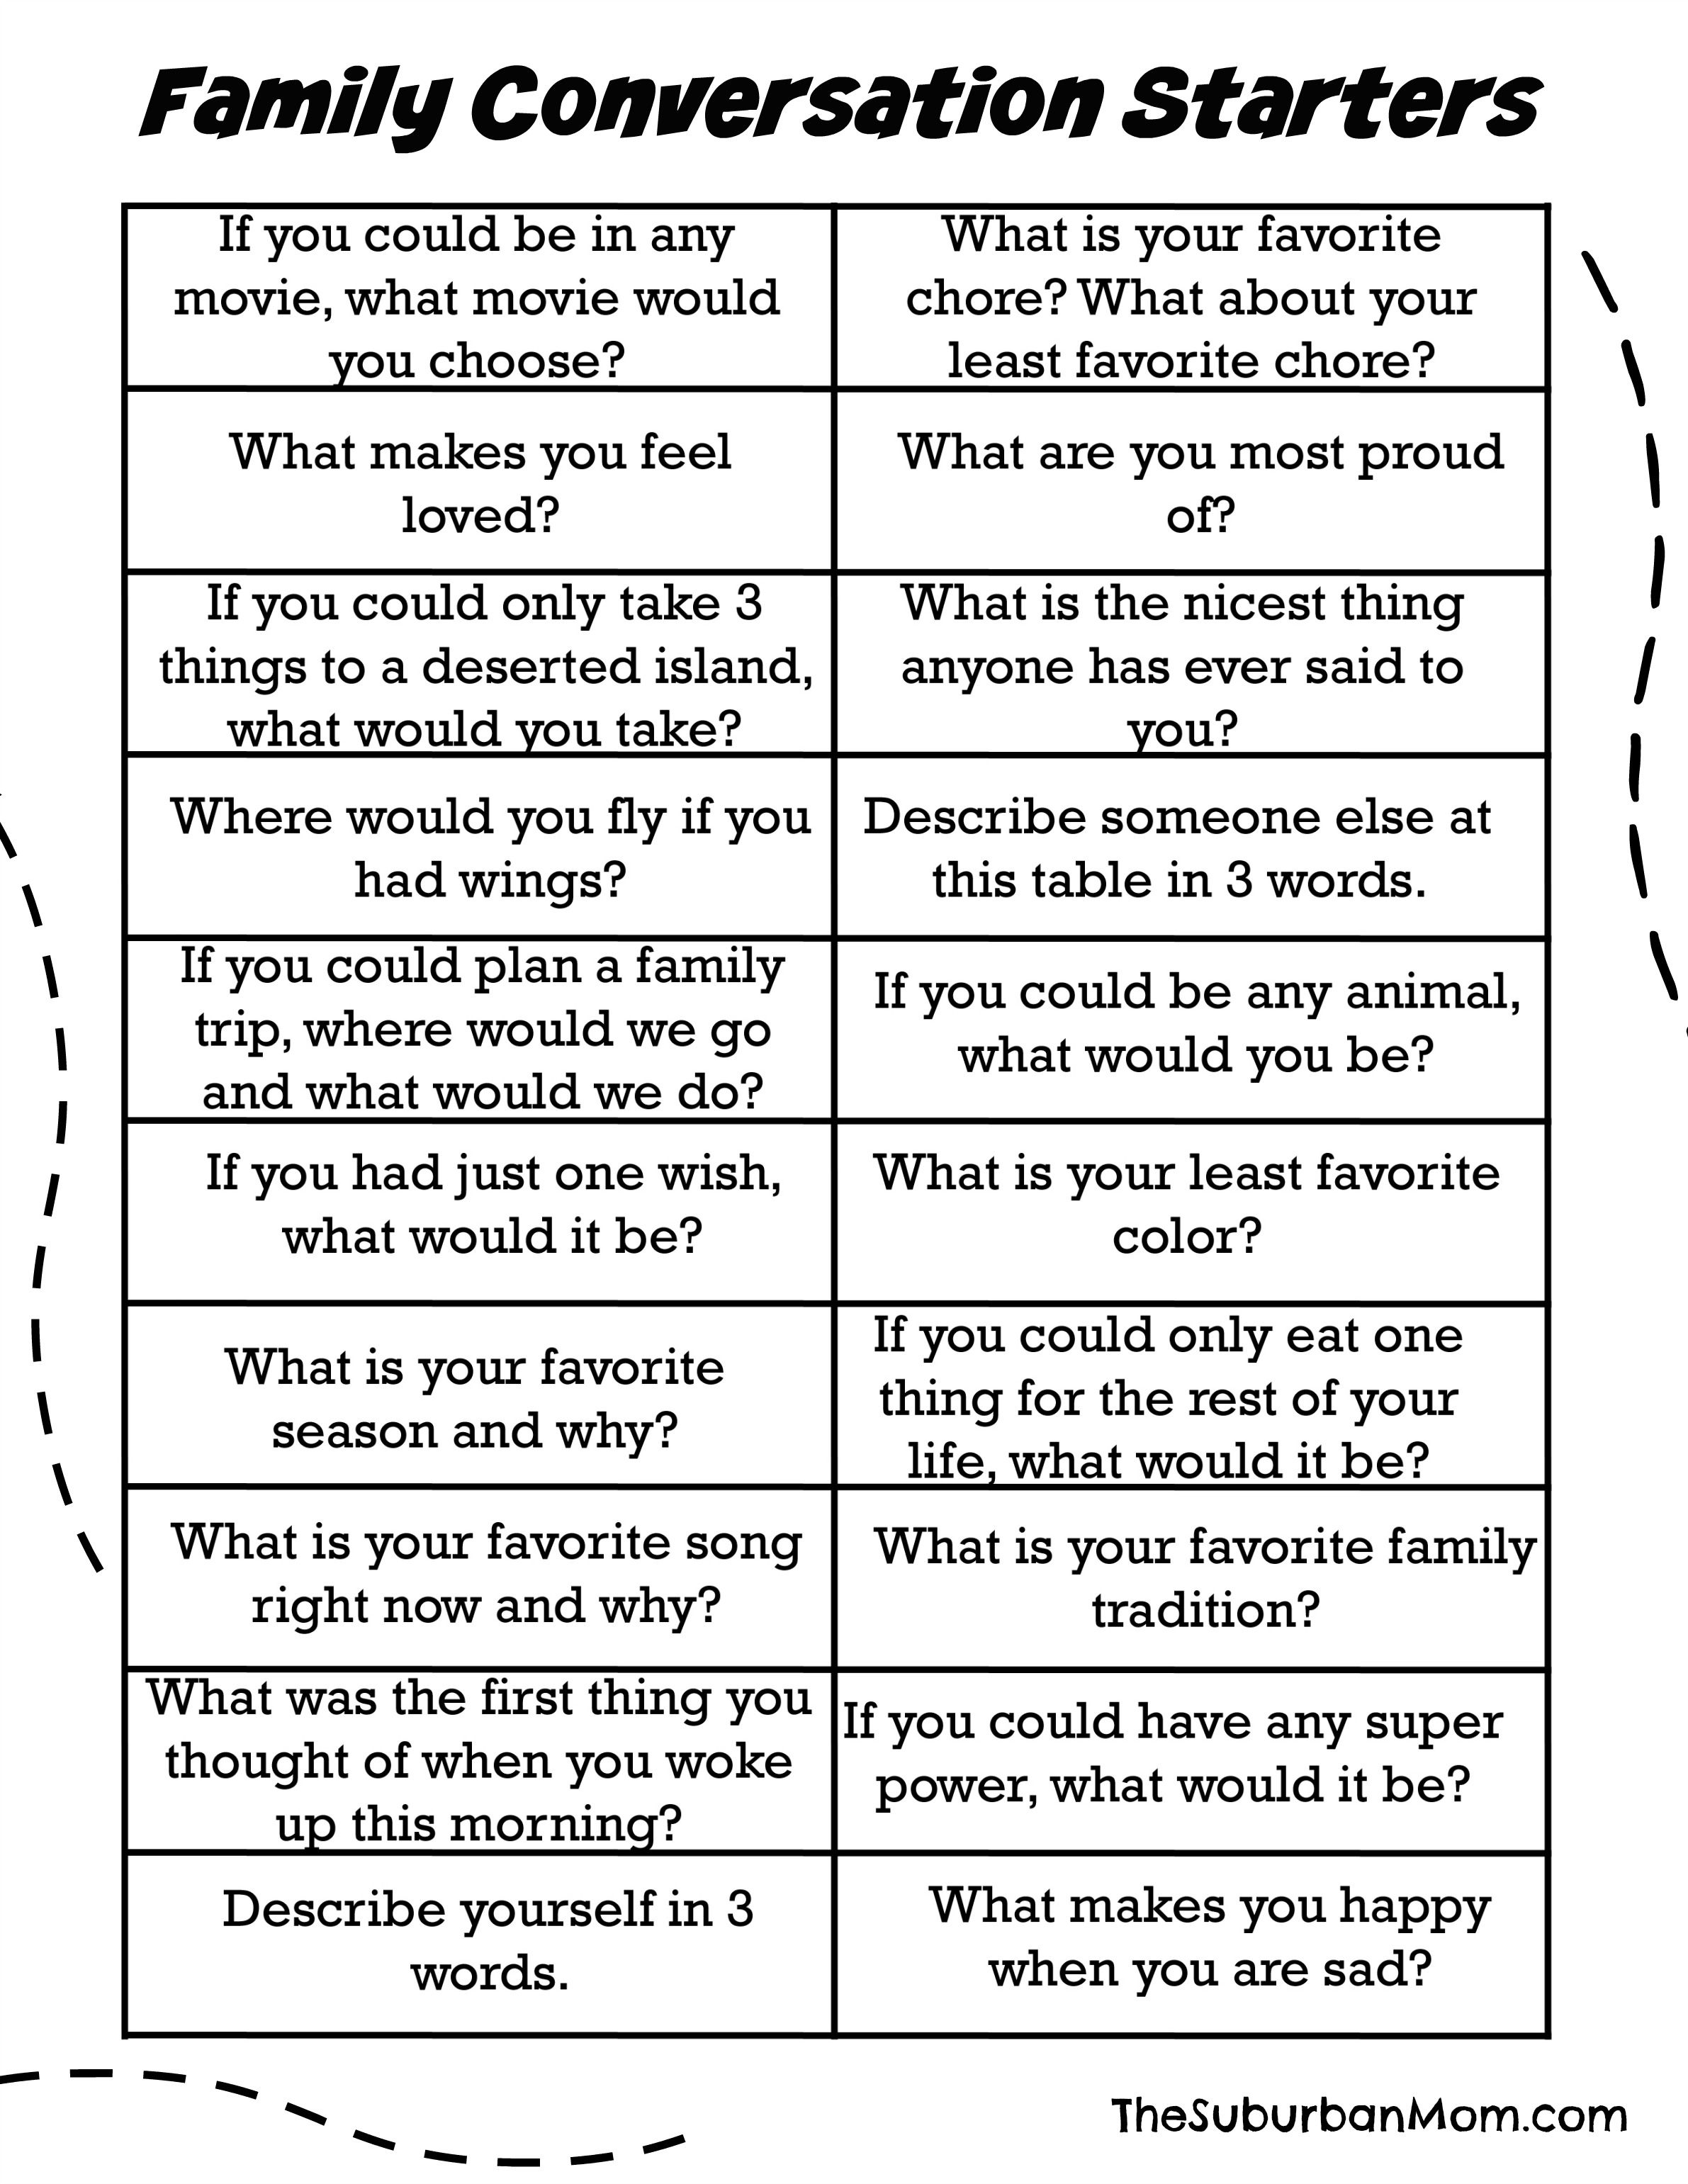 Family Conversation Starters Printable With Images